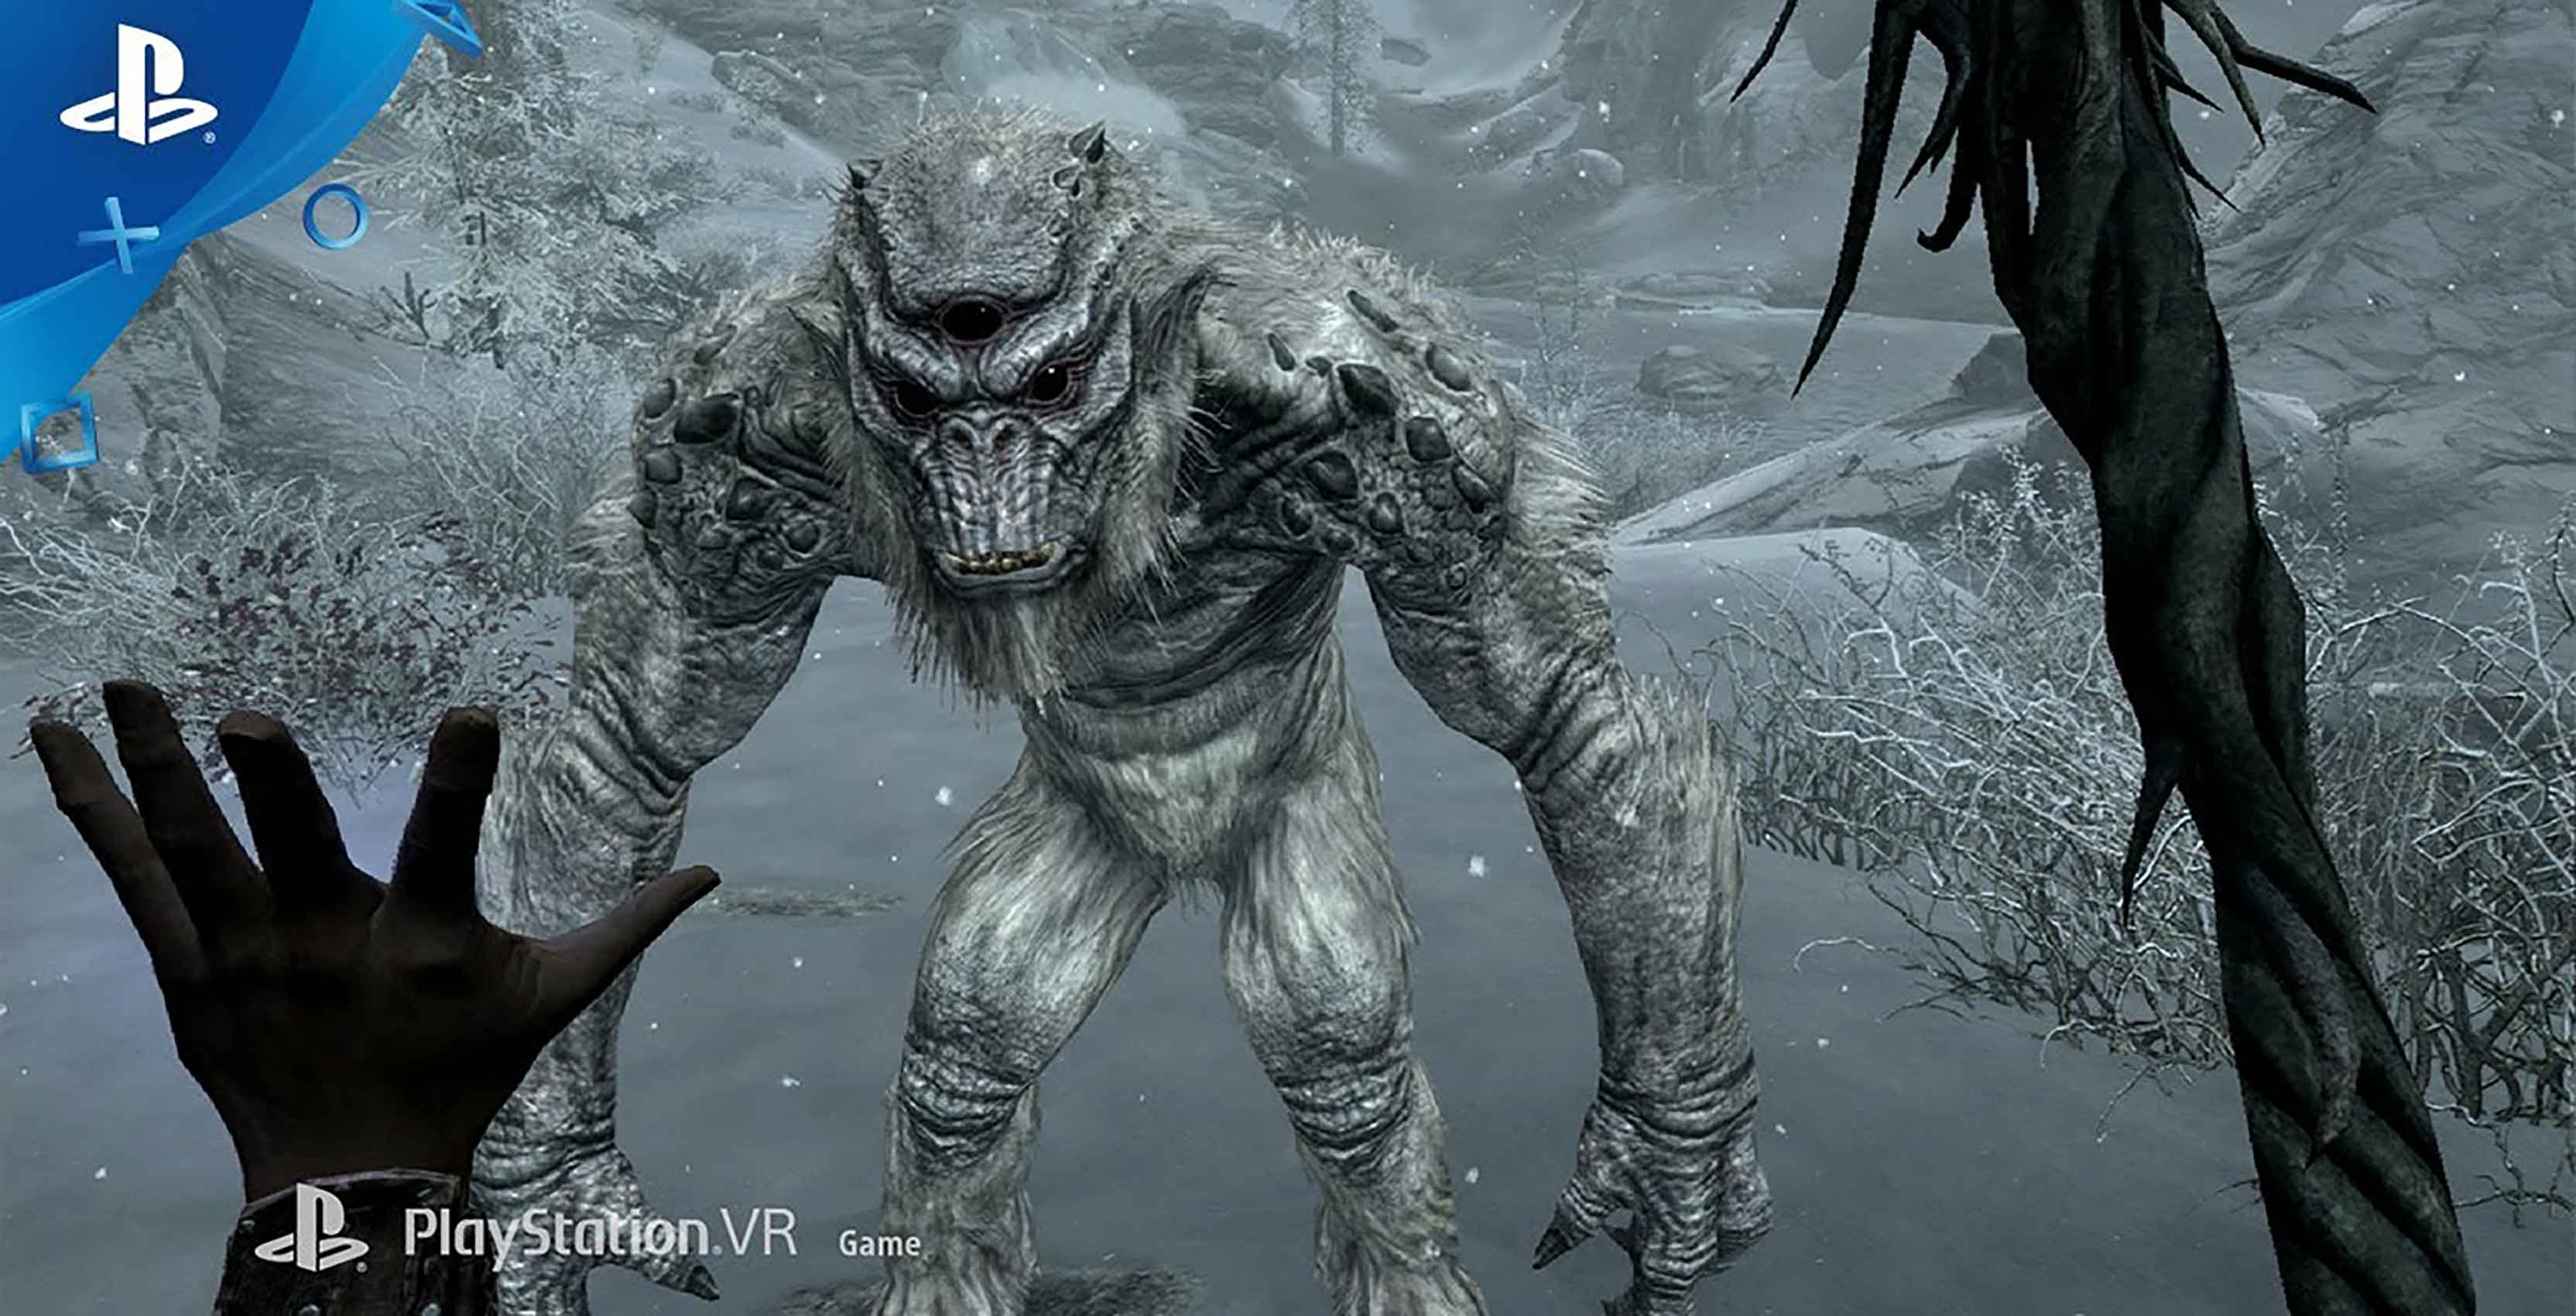 Skyrim VR, Fallout 4 VR and DOOM VFR launch dates revealed